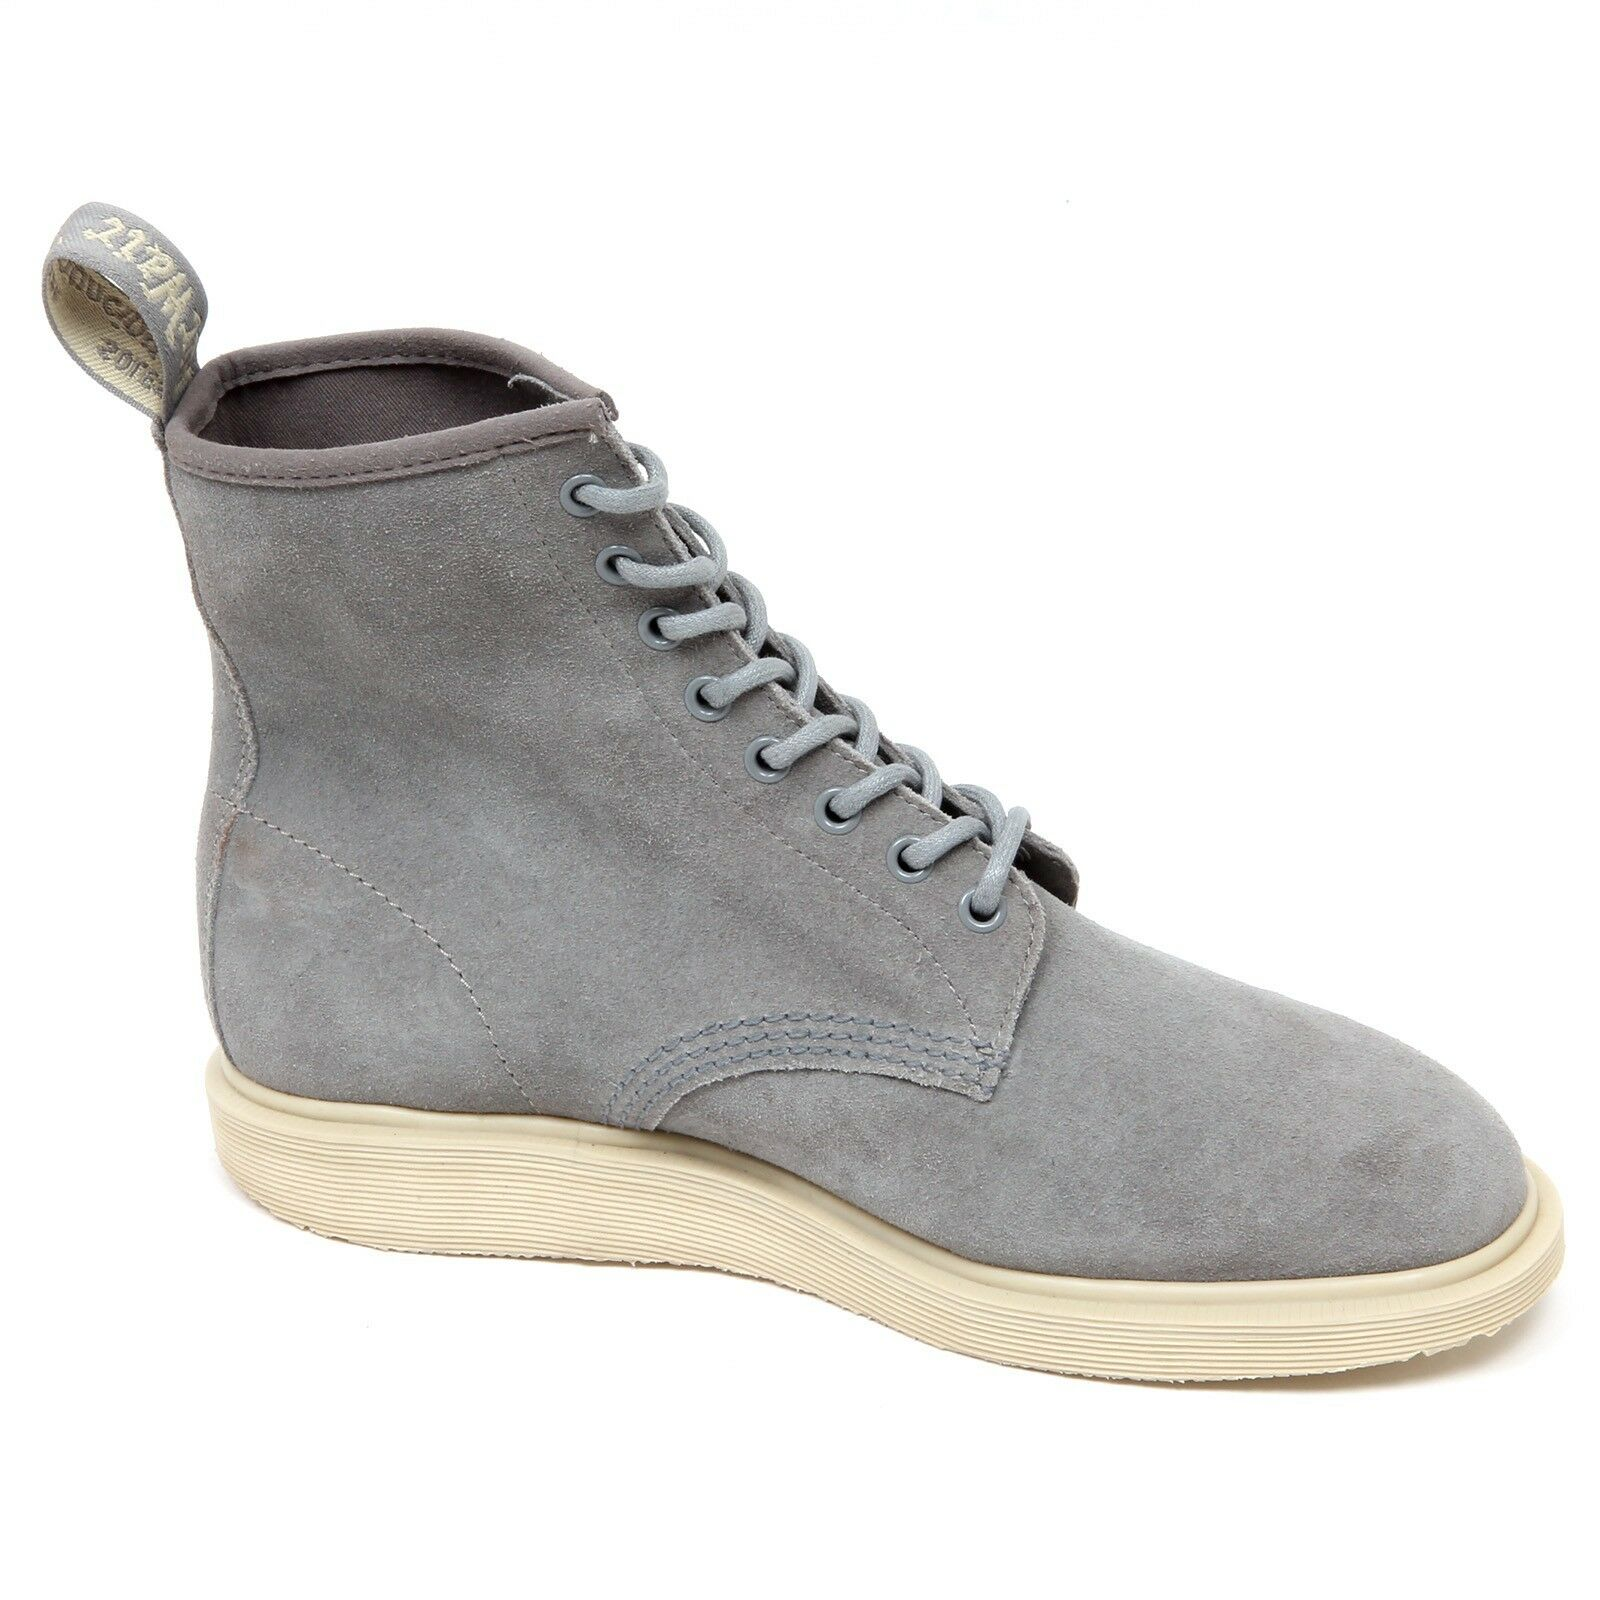 D3136 (without box) sneaker uomo DR. man MARTENS WHITON grigio shoe man DR. fdd3e5